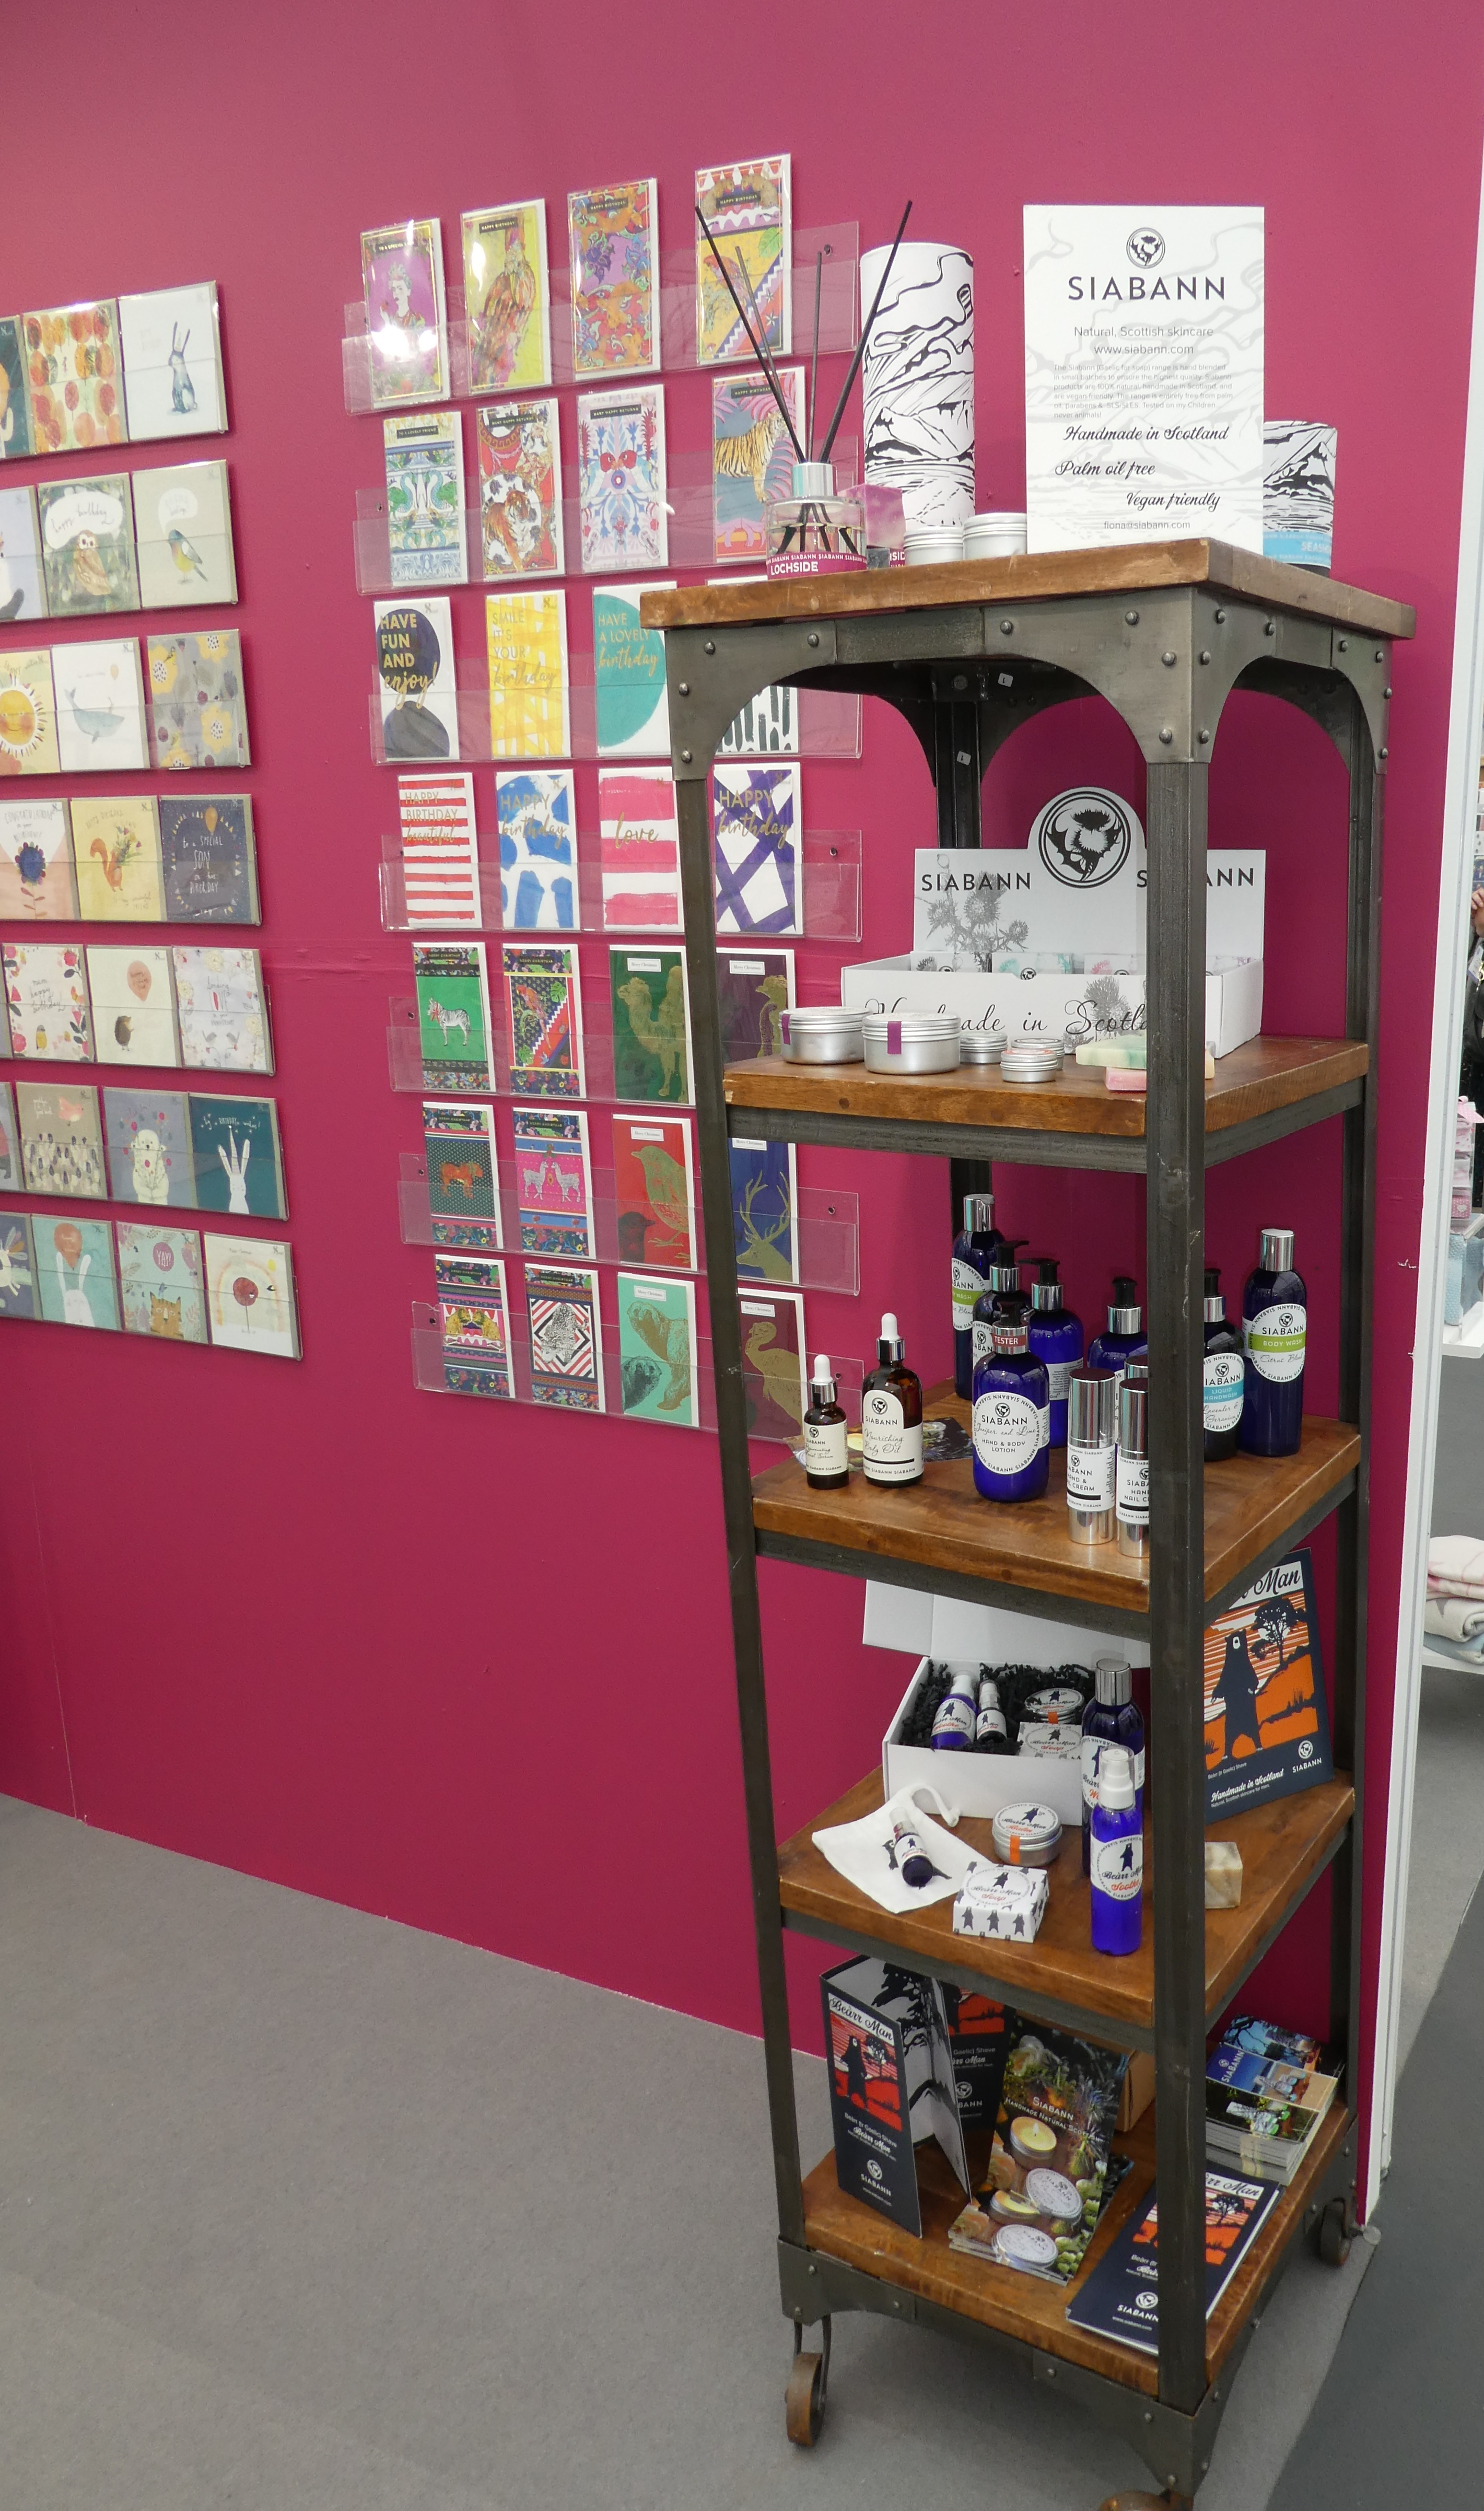 Above: Some Siabann Skincare products displayed on the Soul stand at the Harrogate show.